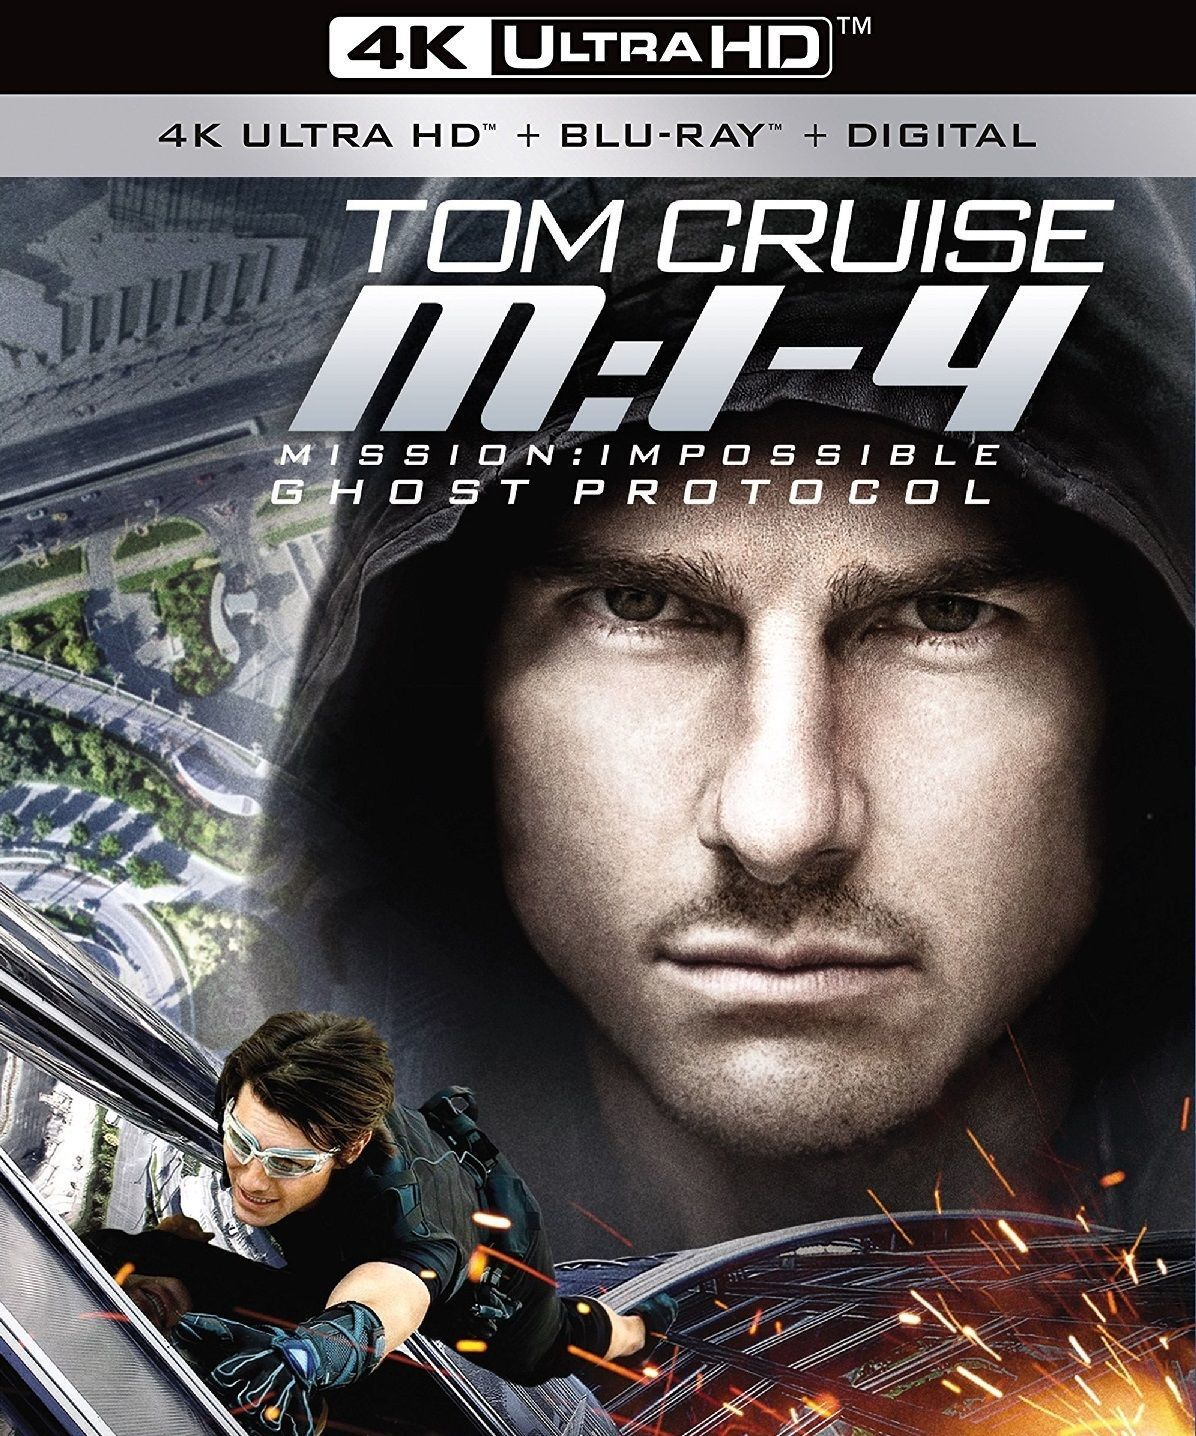 Mission Impossible 4 - Ghost Protocol on UHD Blu-ray image